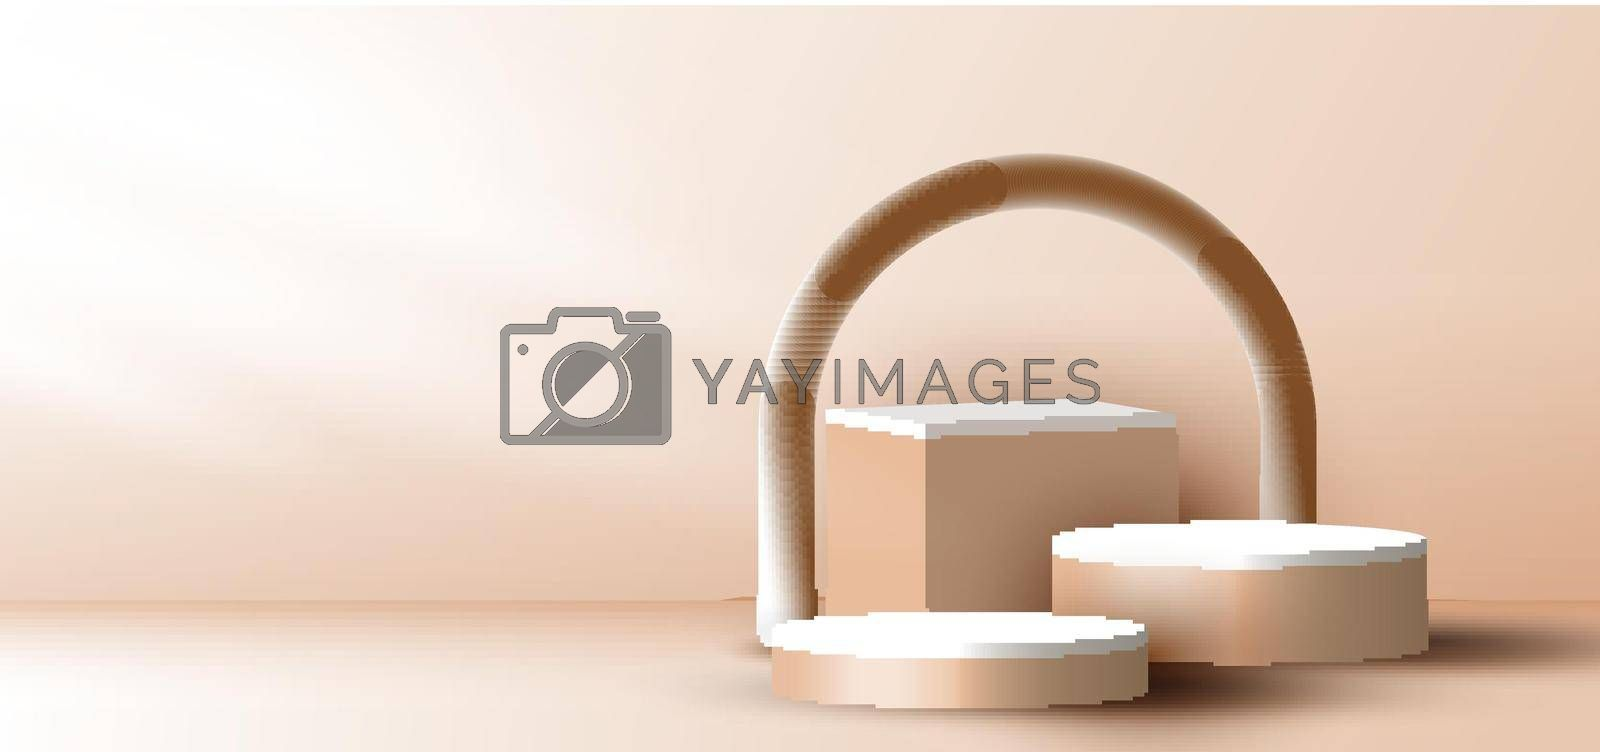 Royalty free image of 3D realistic elegant brown geometric cylinder, cube on layers rounded backdrop on beige background with lighting by phochi